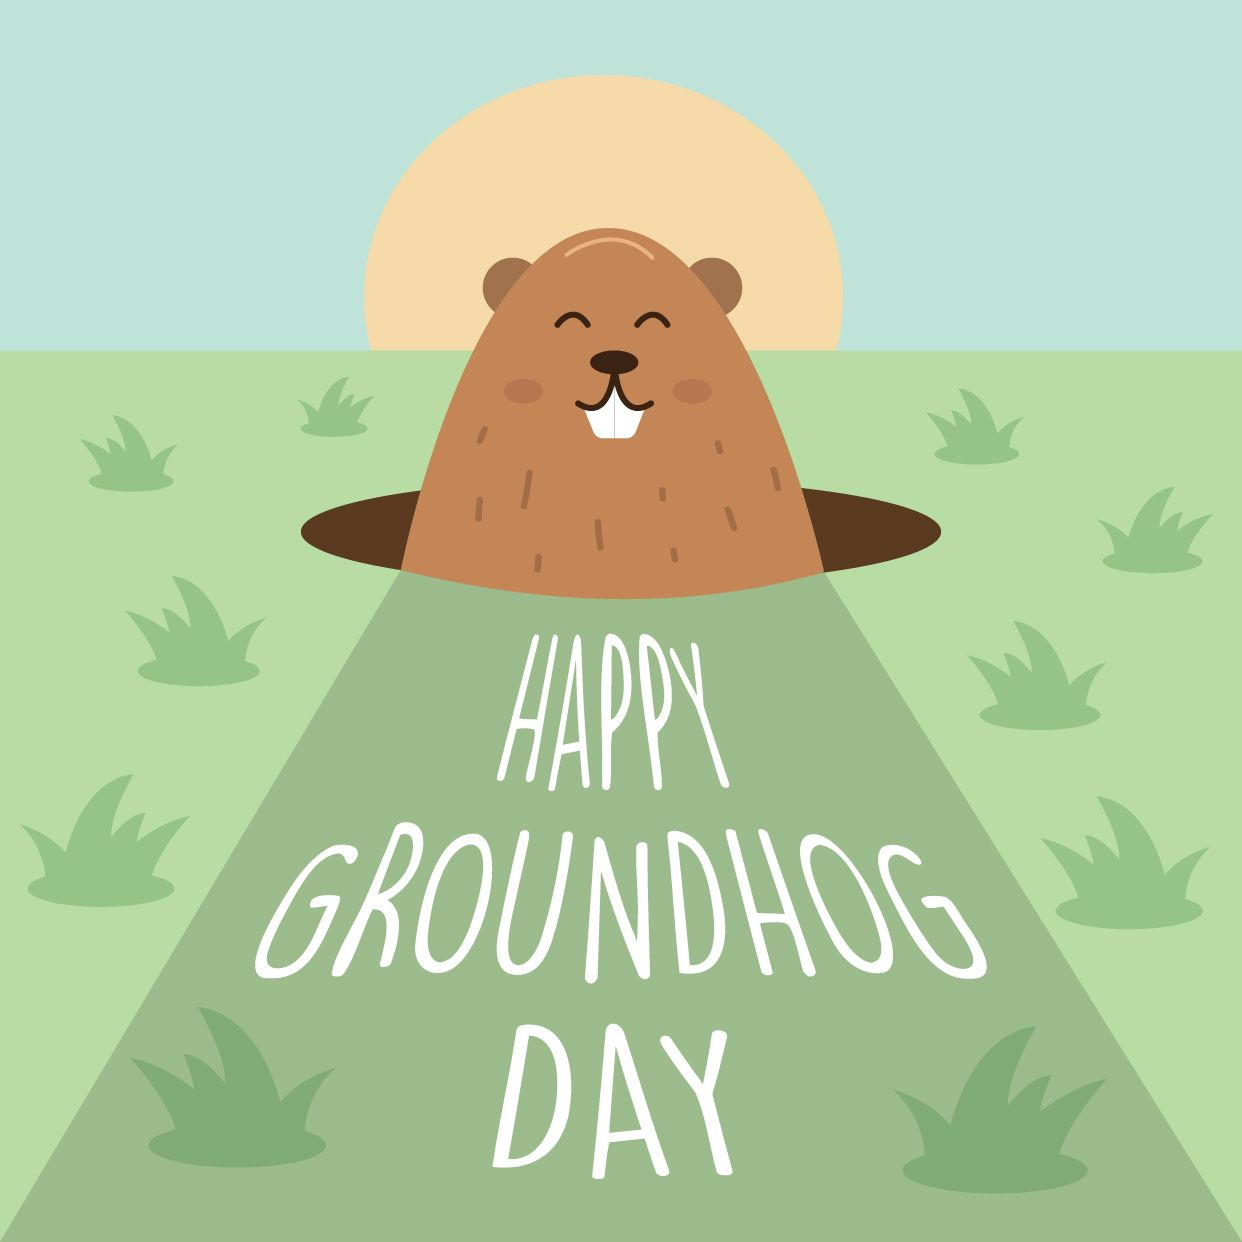 February 2nd Is Groundhog Day In Canada We Ll Be Getting An Early Spring Greatlakesdental Ca Happy Groundhog Day Groundhog Day Groundhog